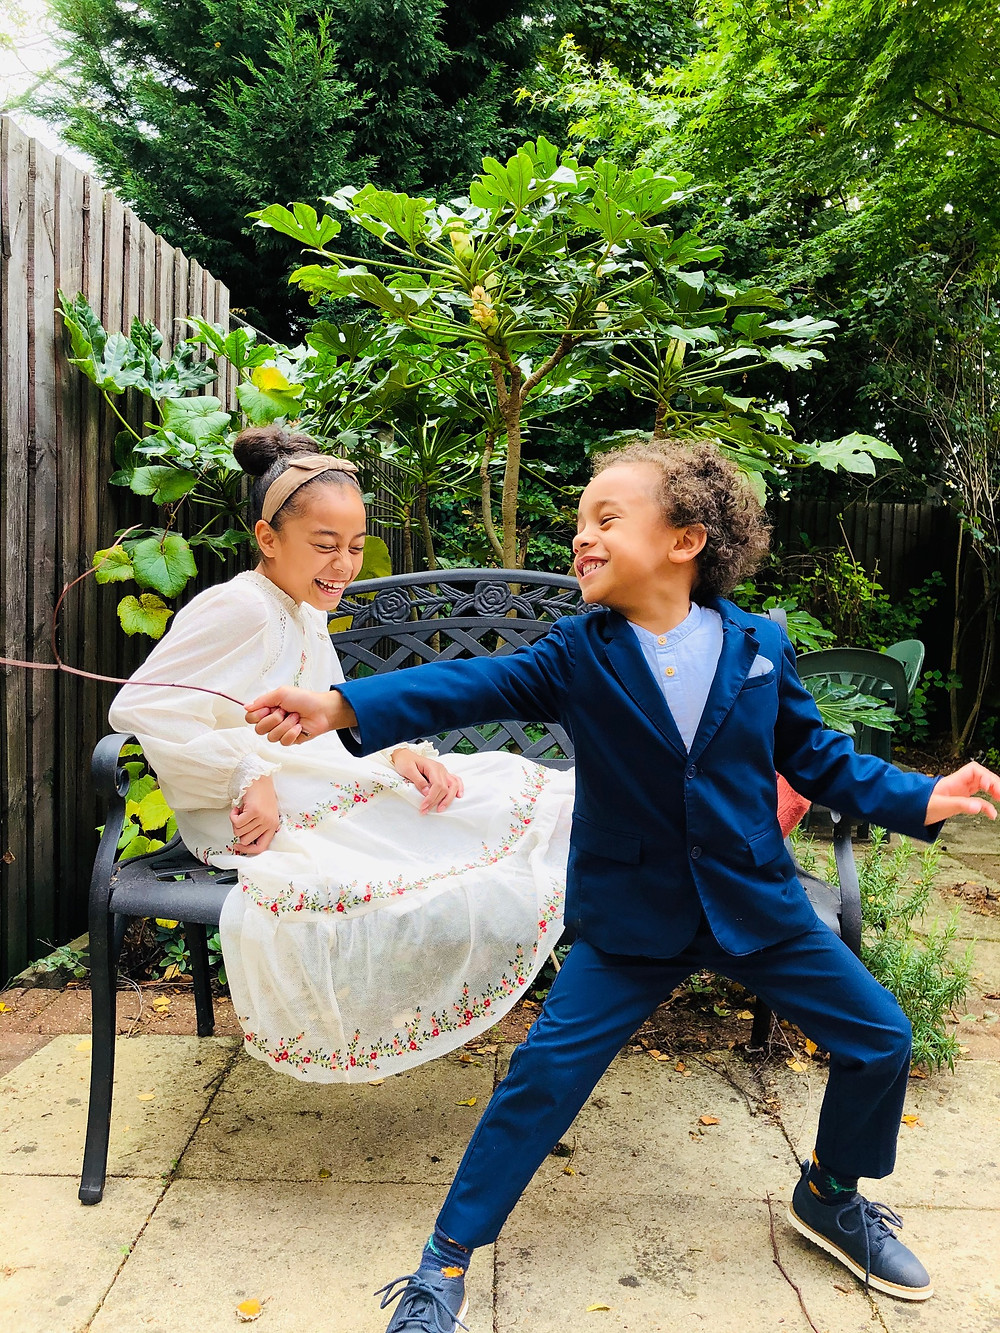 Girl wearing a white embroidered dress sitting on a black bench laughing while a boy in blue suit with blue dress shoes is standing in front of her with a stick. The boy is also laughing as he strikes a pose